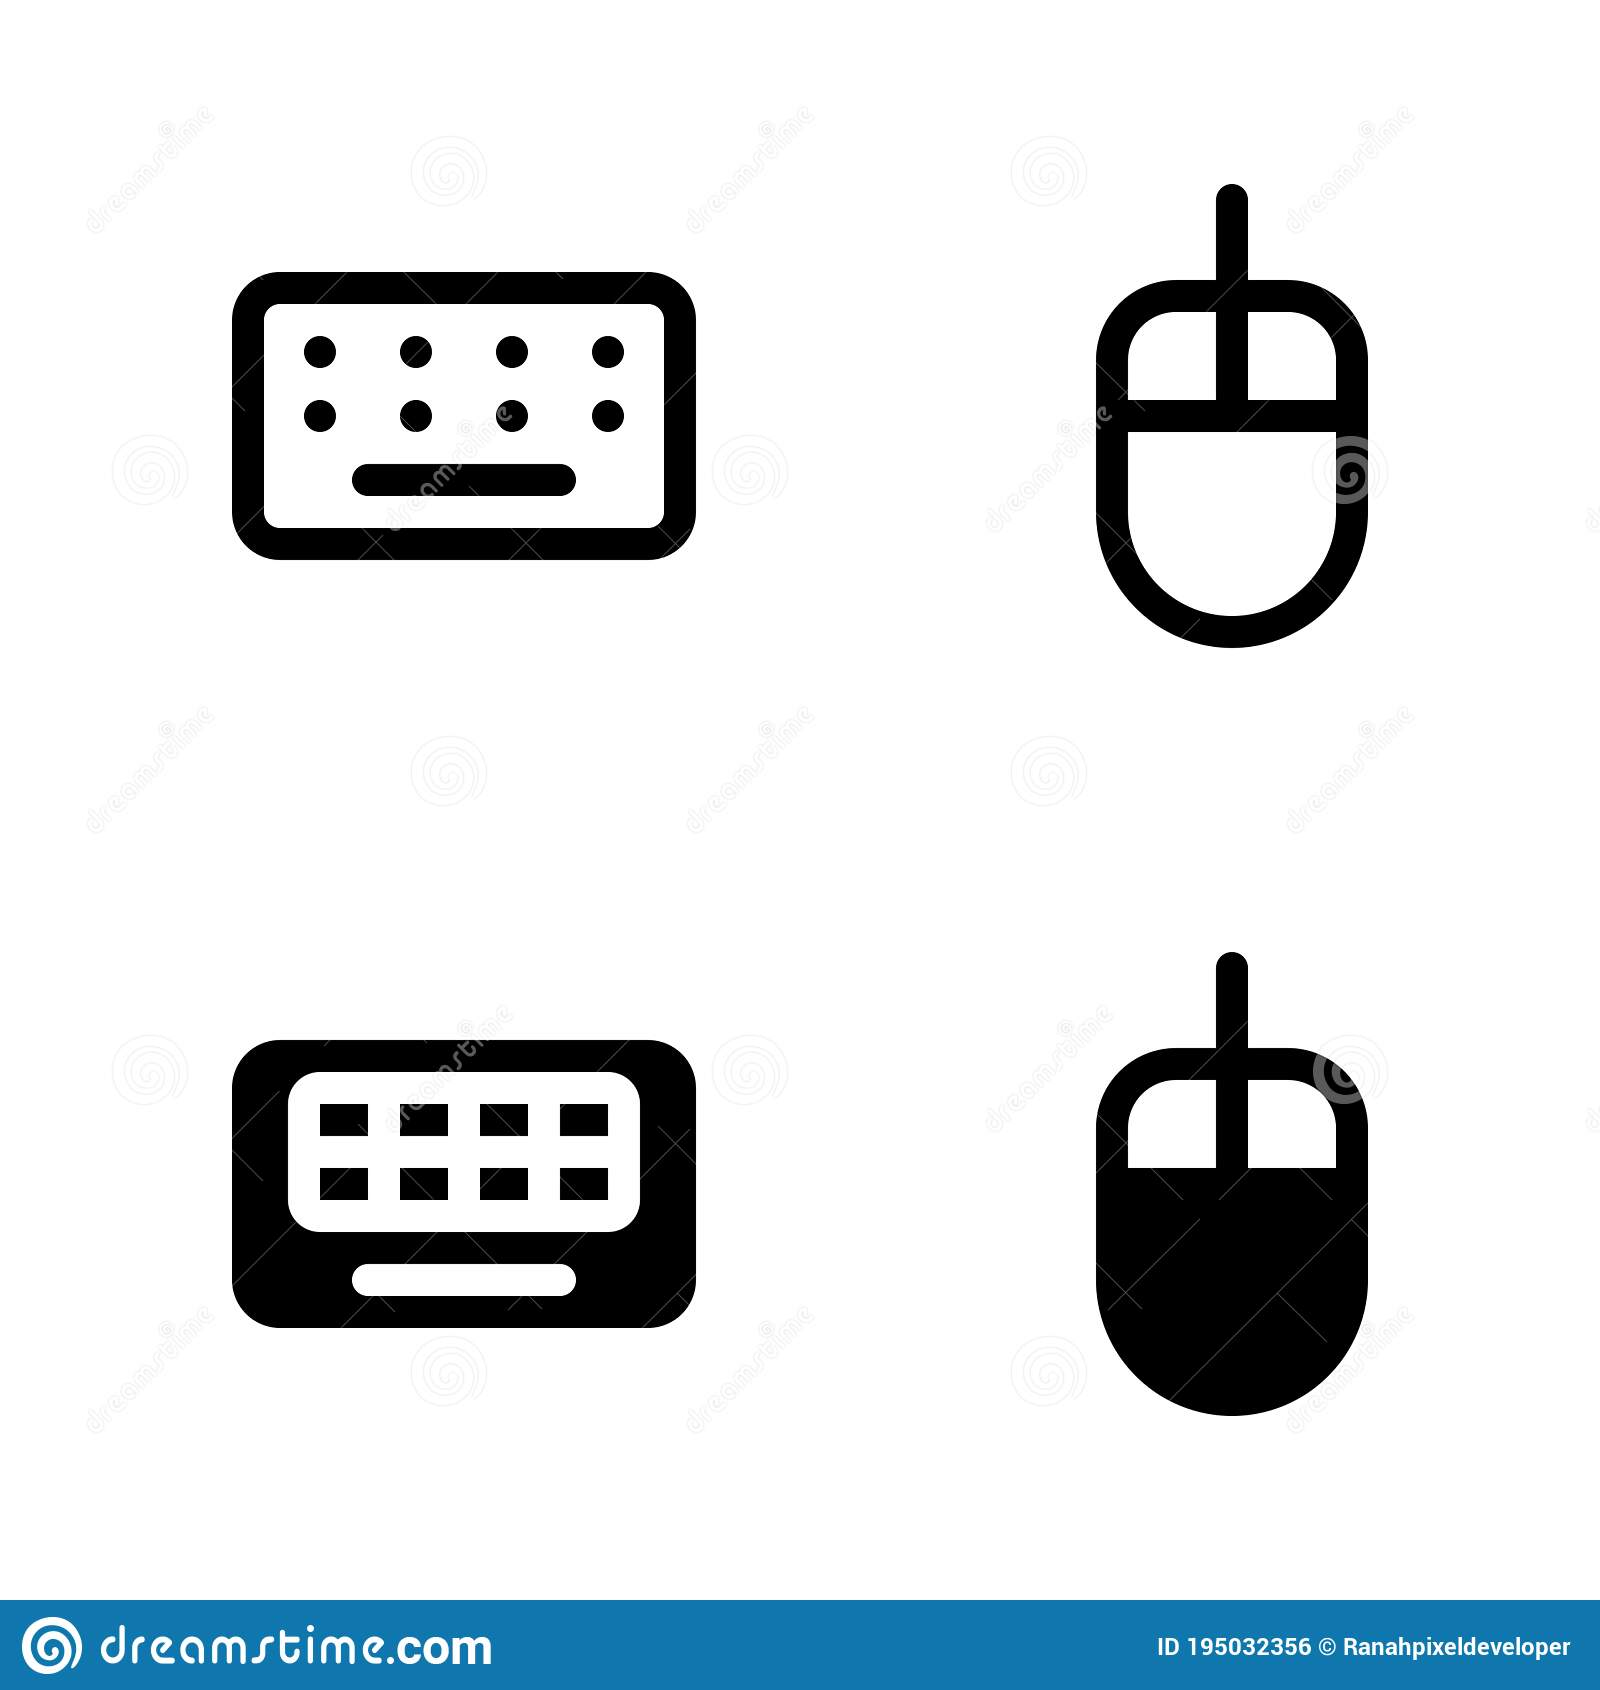 Pc Clipart Outline - Display Device - Free Transparent PNG Clipart Images  Download